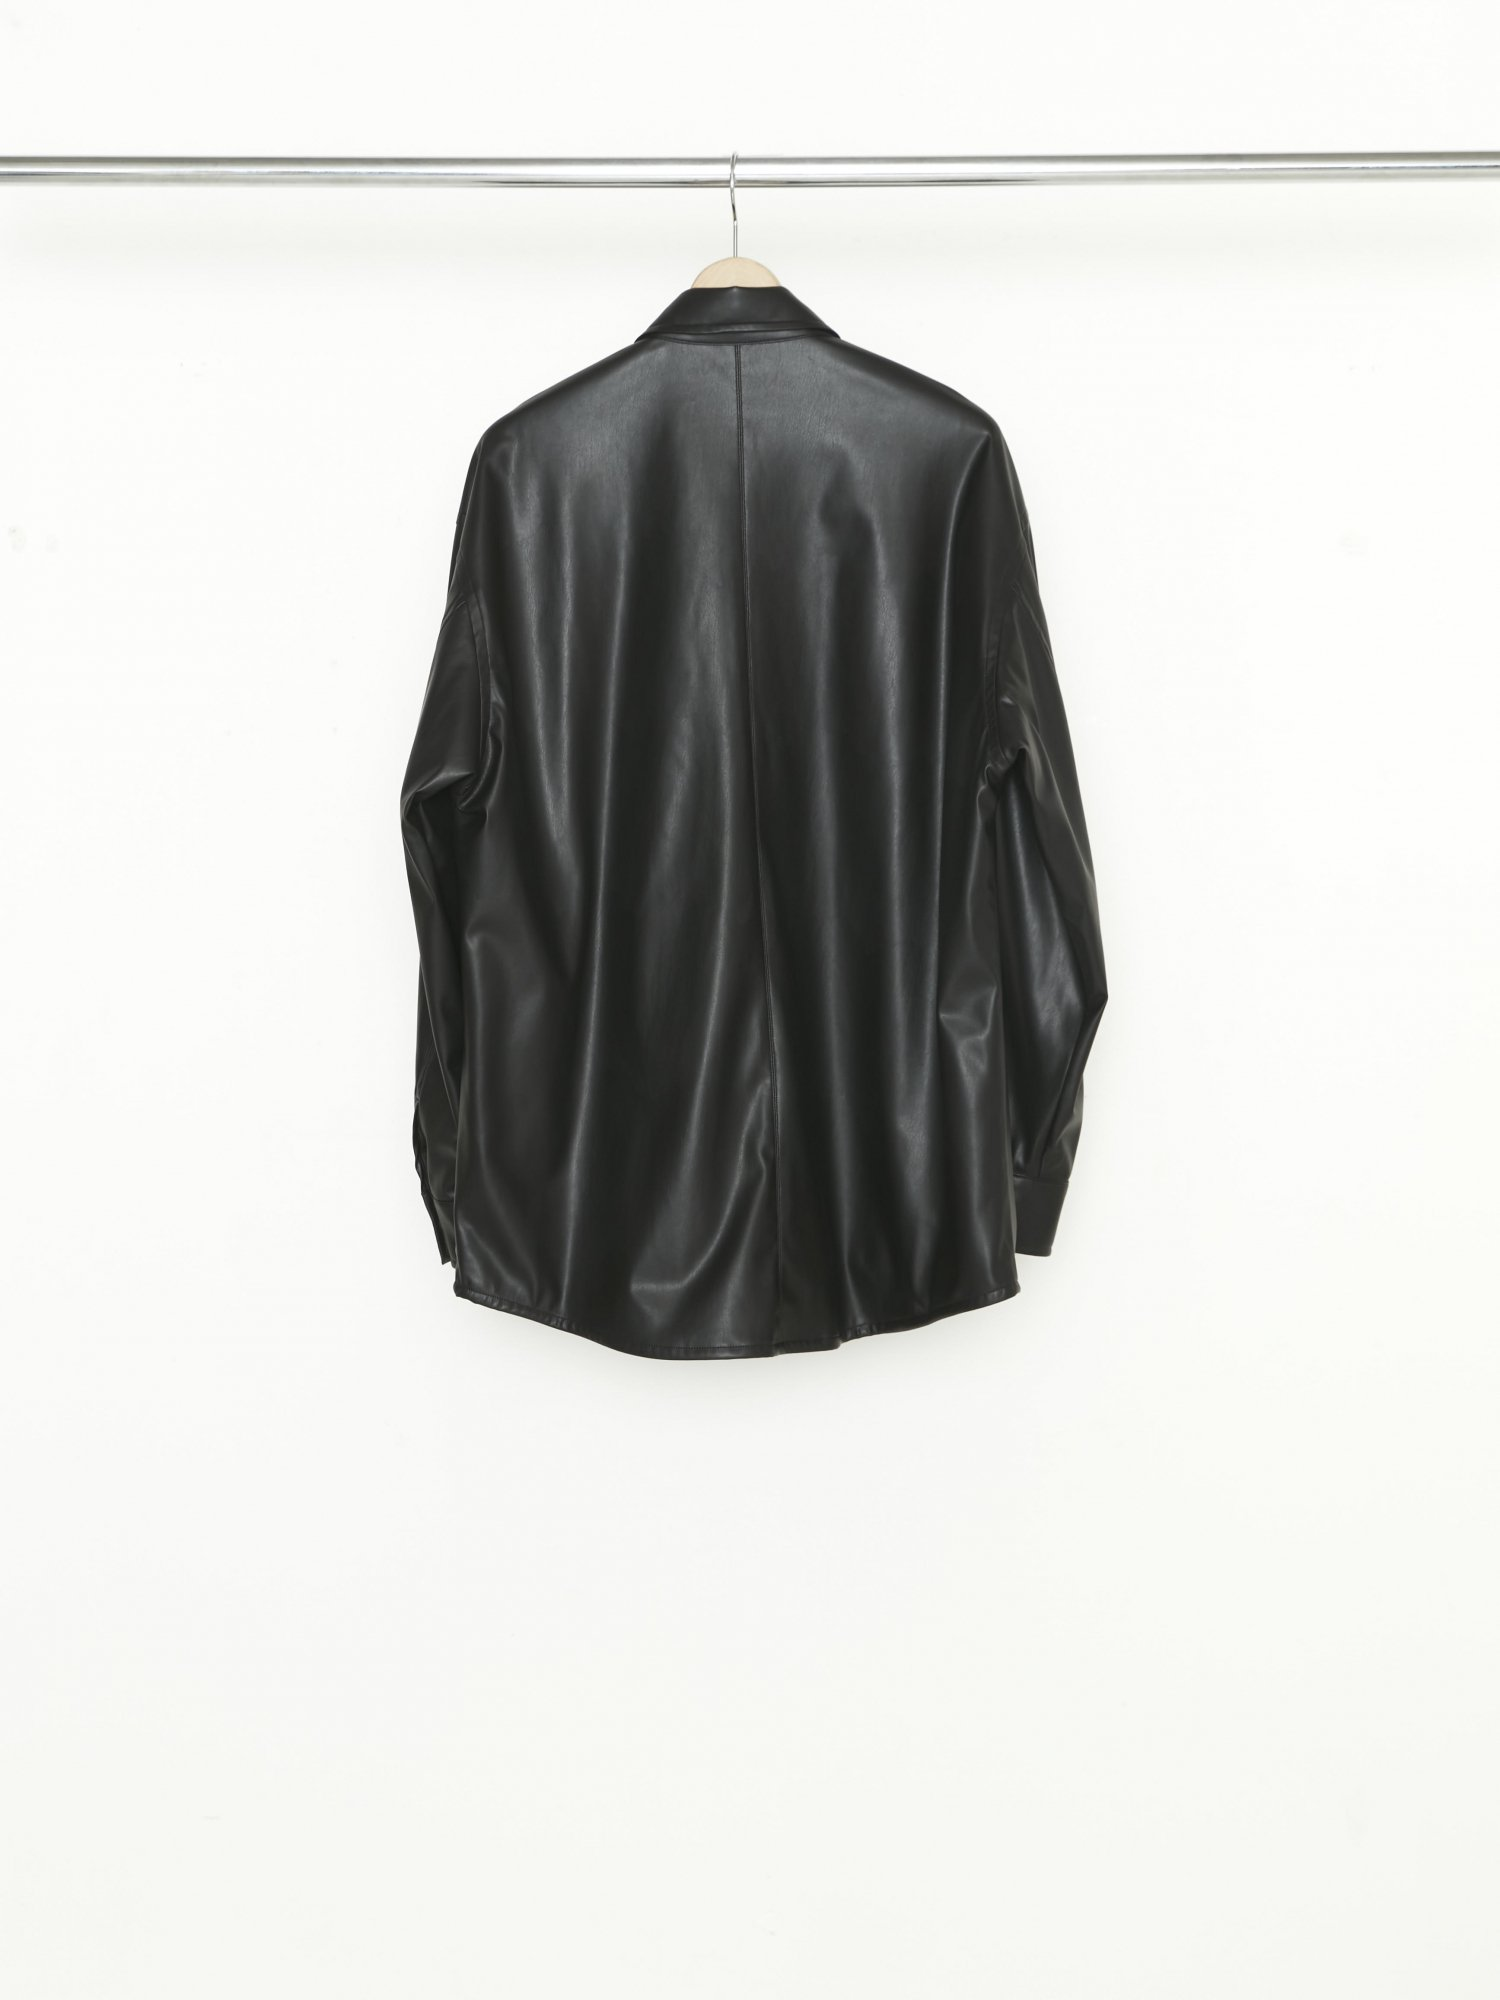 ALLEGE<br />Synthetic Leather Shirt / BLACK<img class='new_mark_img2' src='https://img.shop-pro.jp/img/new/icons14.gif' style='border:none;display:inline;margin:0px;padding:0px;width:auto;' />